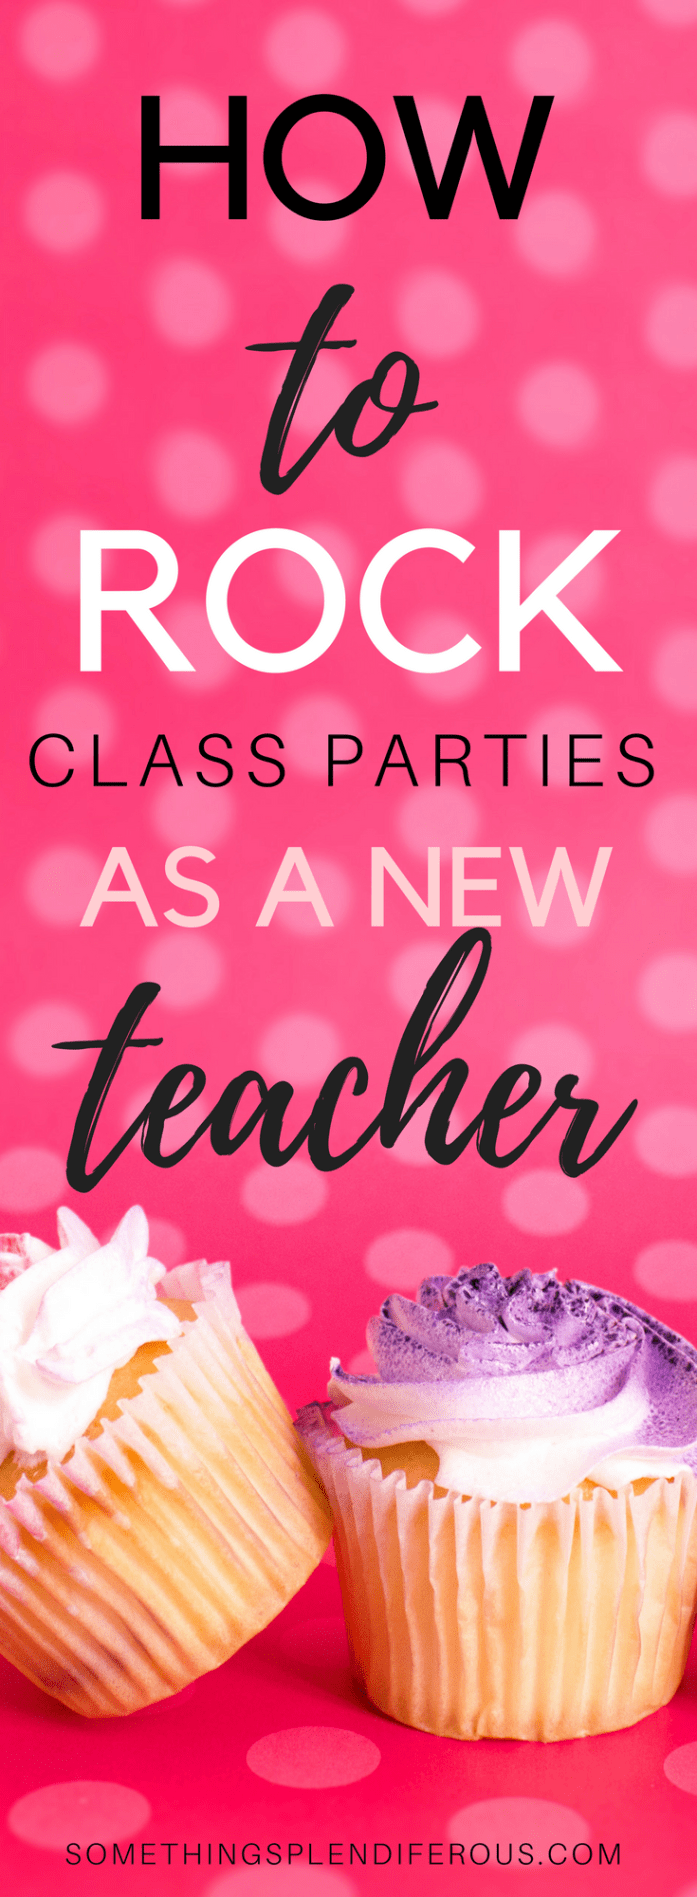 How to Rock Your Classroom Parties Free Classroom Party Printable template www.somethingsplendiferous.com How to Rock Class Parties as a New Teacher